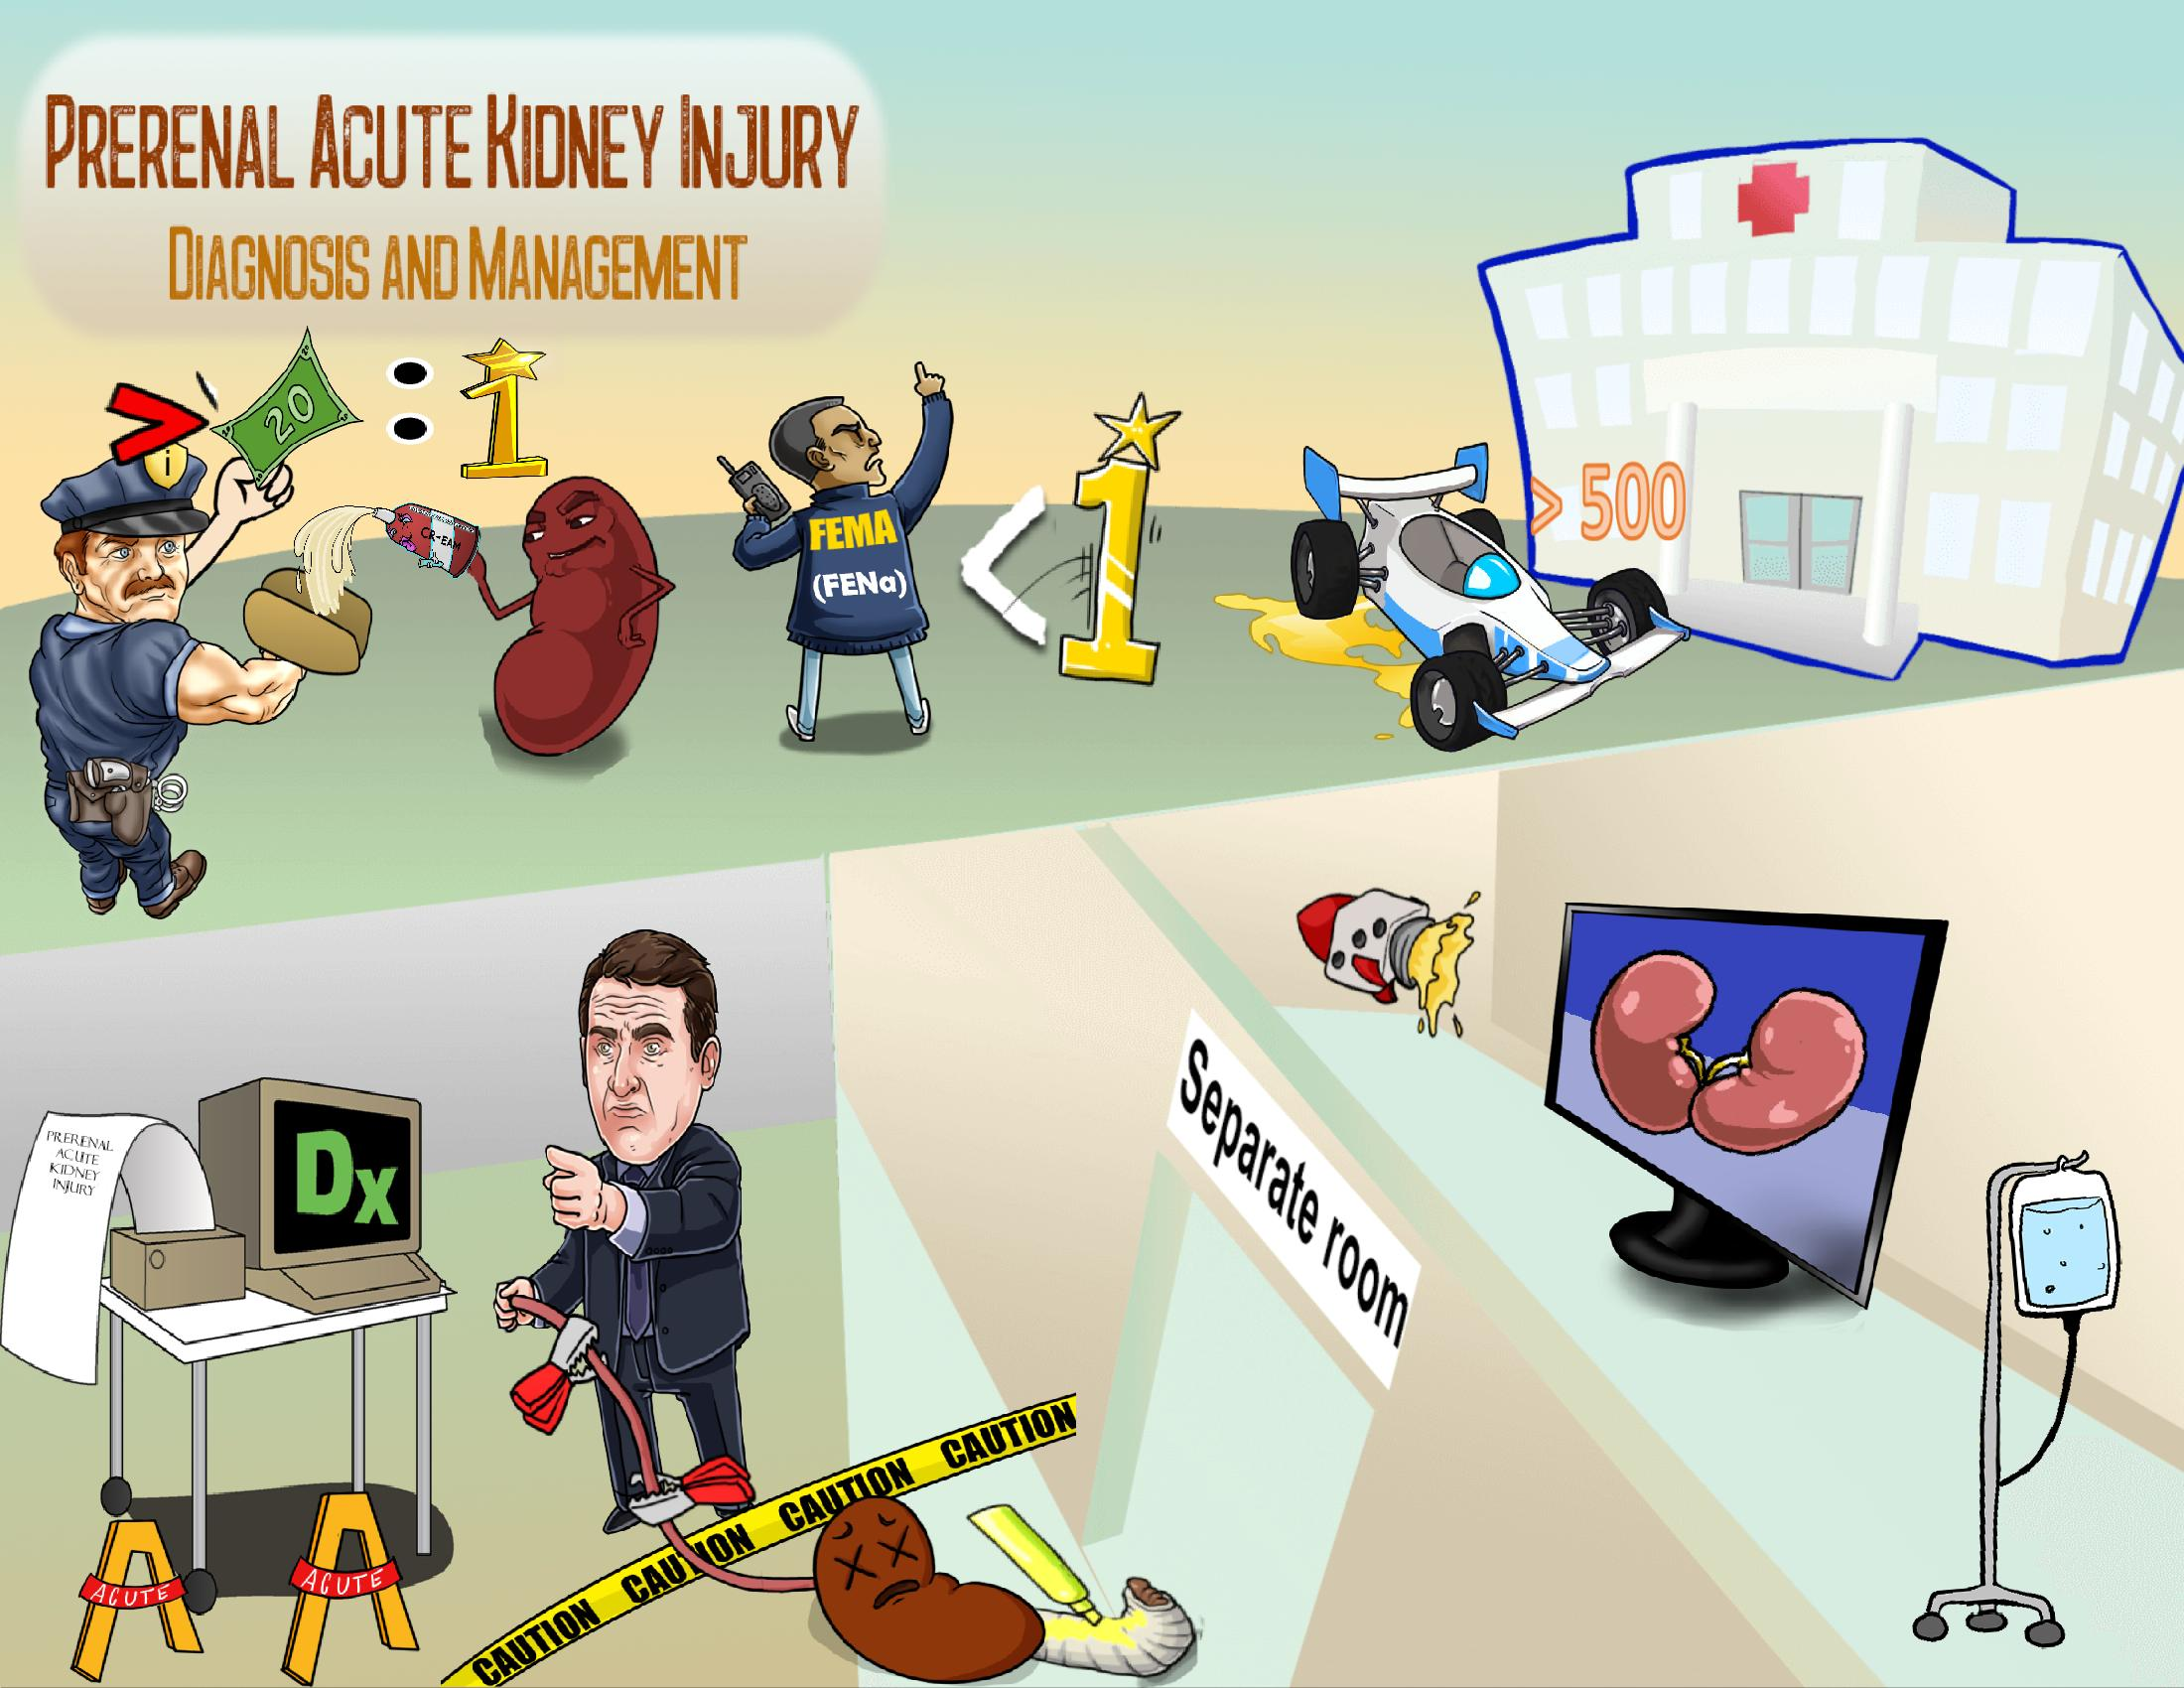 Prerenal Acute Kidney Injury Diagnosis and Management